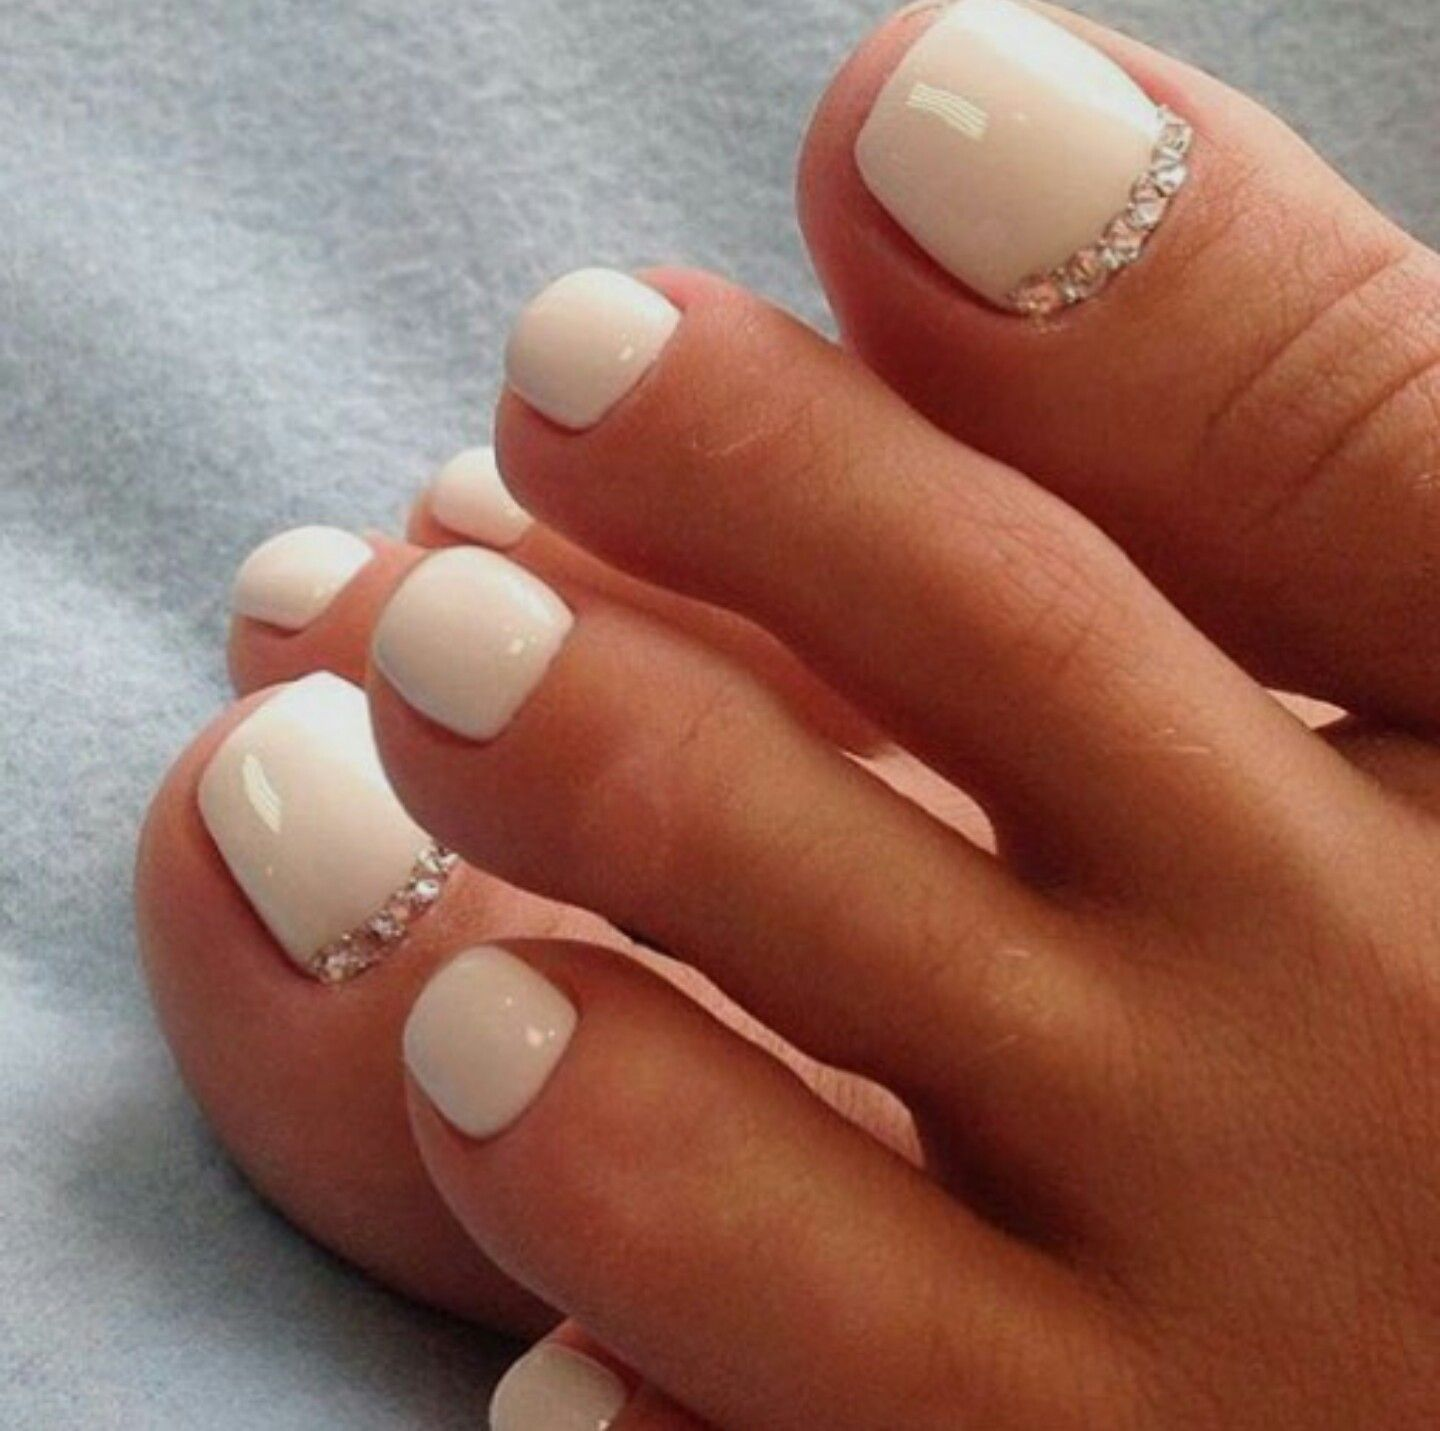 Pin by Christina Riff on Nails | Pinterest | Pedicures, Pedicure ...